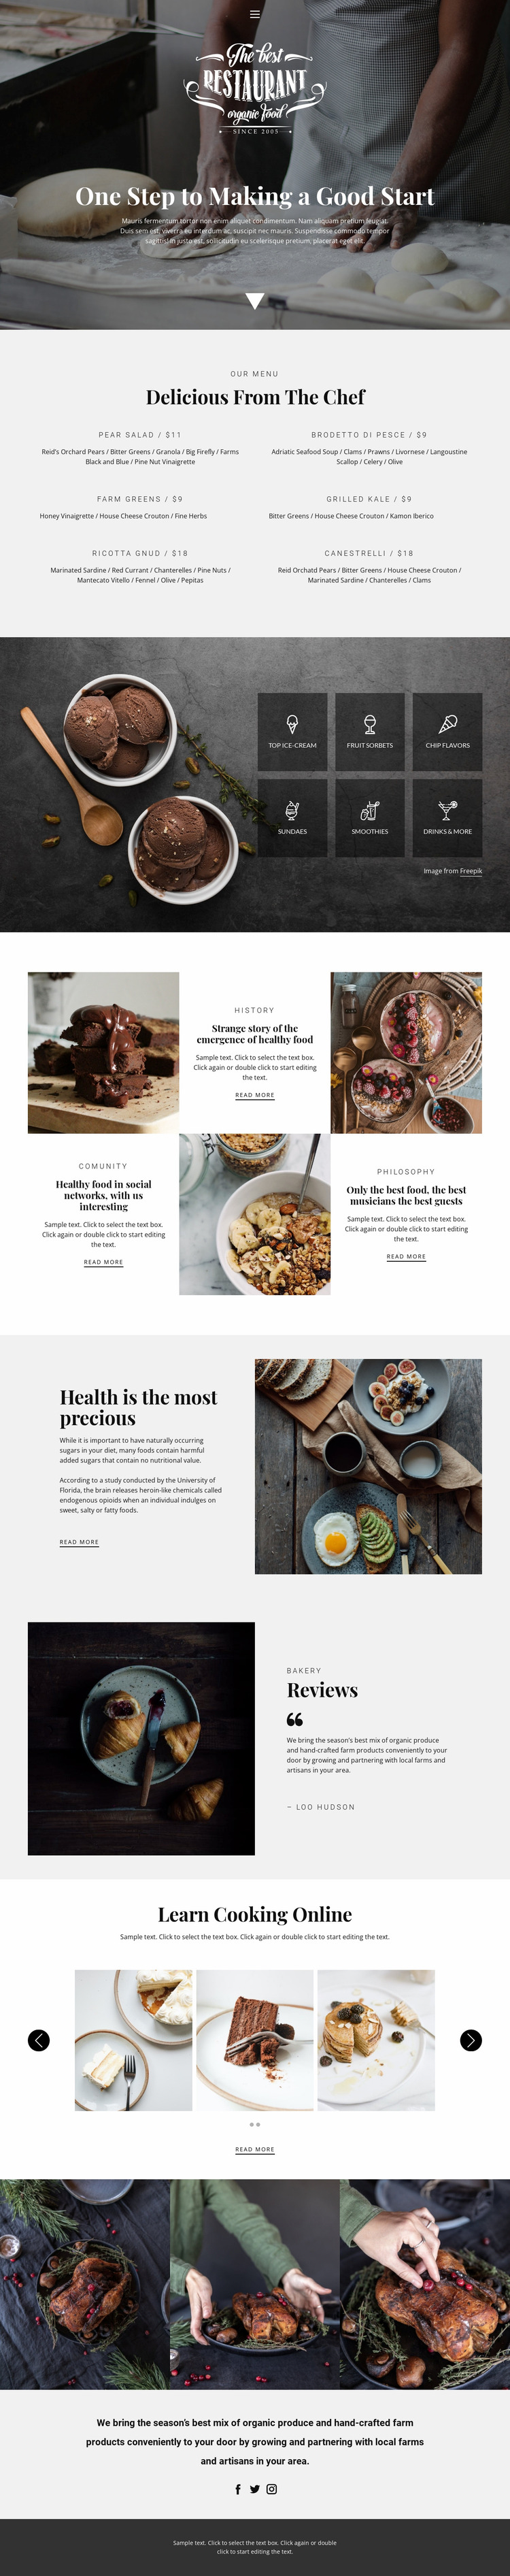 Recipes and cook lessons Website Mockup